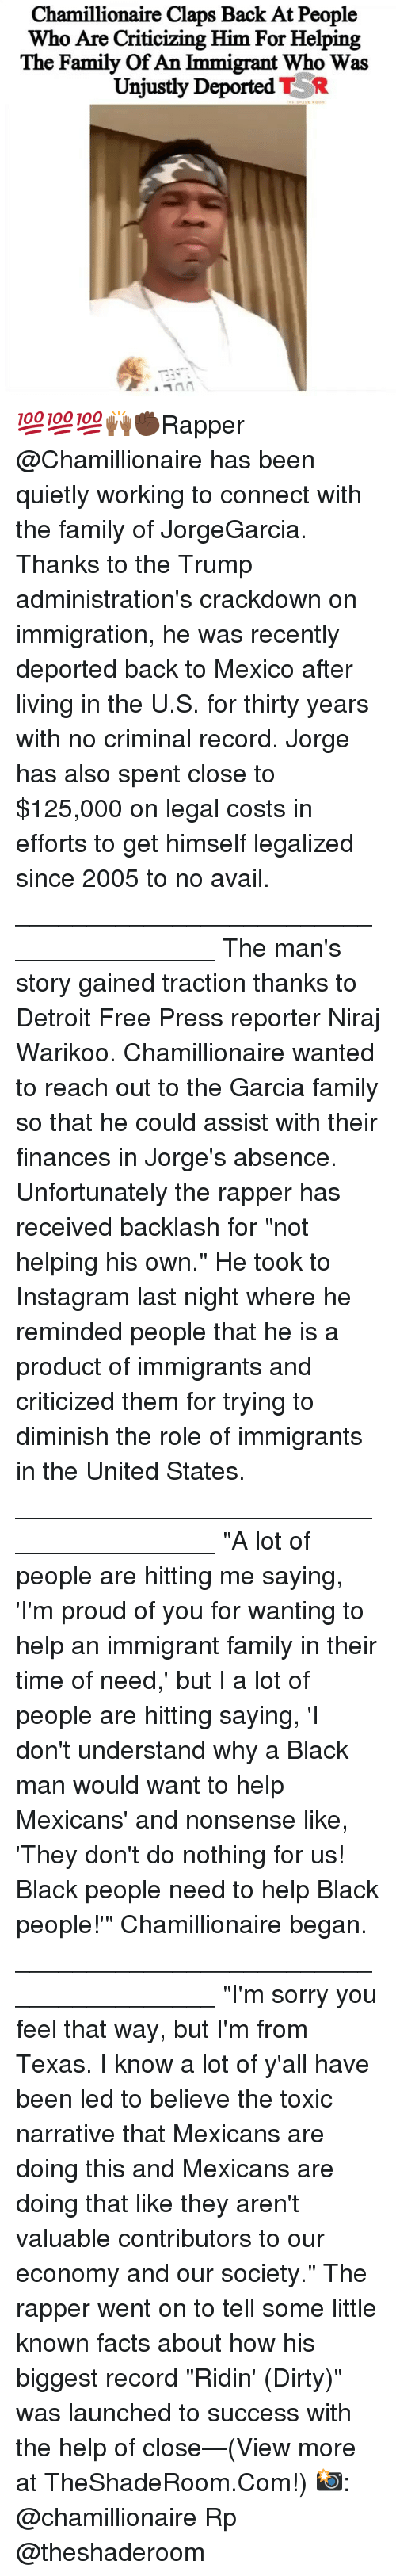 "Claps: Chamillionaire Claps Back At People  Who Are Criticizing Him For Helping  The Family Of An Immigrant Who Was  Unjustly Deported TR 💯💯💯🙌🏾✊🏿Rapper @Chamillionaire has been quietly working to connect with the family of JorgeGarcia. Thanks to the Trump administration's crackdown on immigration, he was recently deported back to Mexico after living in the U.S. for thirty years with no criminal record. Jorge has also spent close to $125,000 on legal costs in efforts to get himself legalized since 2005 to no avail. _______________________________________ The man's story gained traction thanks to Detroit Free Press reporter Niraj Warikoo. Chamillionaire wanted to reach out to the Garcia family so that he could assist with their finances in Jorge's absence. Unfortunately the rapper has received backlash for ""not helping his own."" He took to Instagram last night where he reminded people that he is a product of immigrants and criticized them for trying to diminish the role of immigrants in the United States. _______________________________________ ""A lot of people are hitting me saying, 'I'm proud of you for wanting to help an immigrant family in their time of need,' but I a lot of people are hitting saying, 'I don't understand why a Black man would want to help Mexicans' and nonsense like, 'They don't do nothing for us! Black people need to help Black people!'"" Chamillionaire began. _______________________________________ ""I'm sorry you feel that way, but I'm from Texas. I know a lot of y'all have been led to believe the toxic narrative that Mexicans are doing this and Mexicans are doing that like they aren't valuable contributors to our economy and our society."" The rapper went on to tell some little known facts about how his biggest record ""Ridin' (Dirty)"" was launched to success with the help of close—(View more at TheShadeRoom.Com!) 📸: @chamillionaire Rp @theshaderoom"